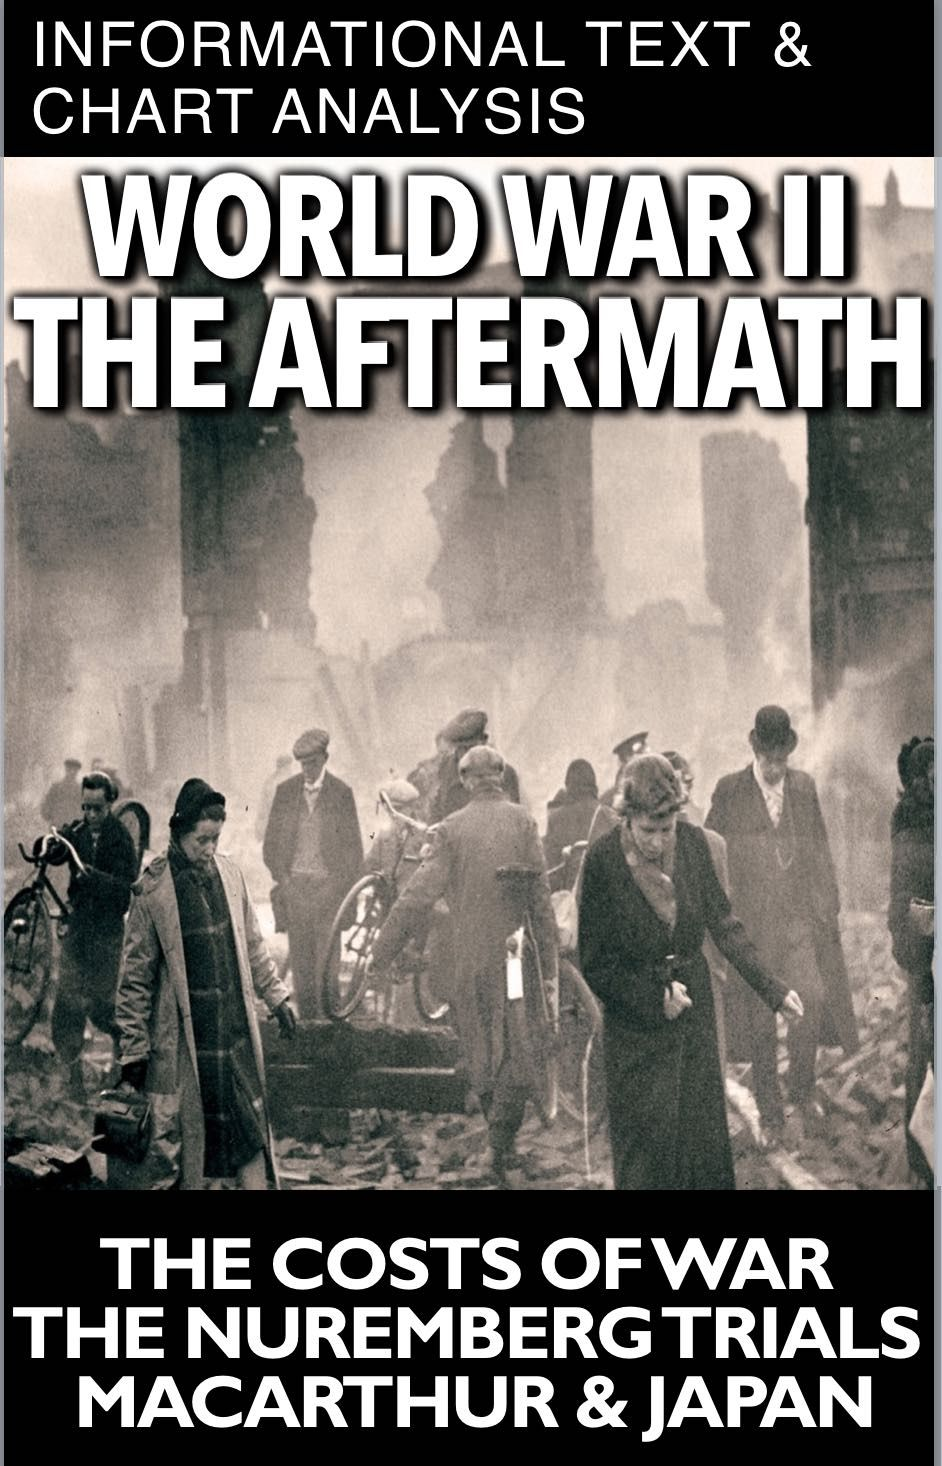 World War Ii Aftermath Informational Text Chart Analysis Takes